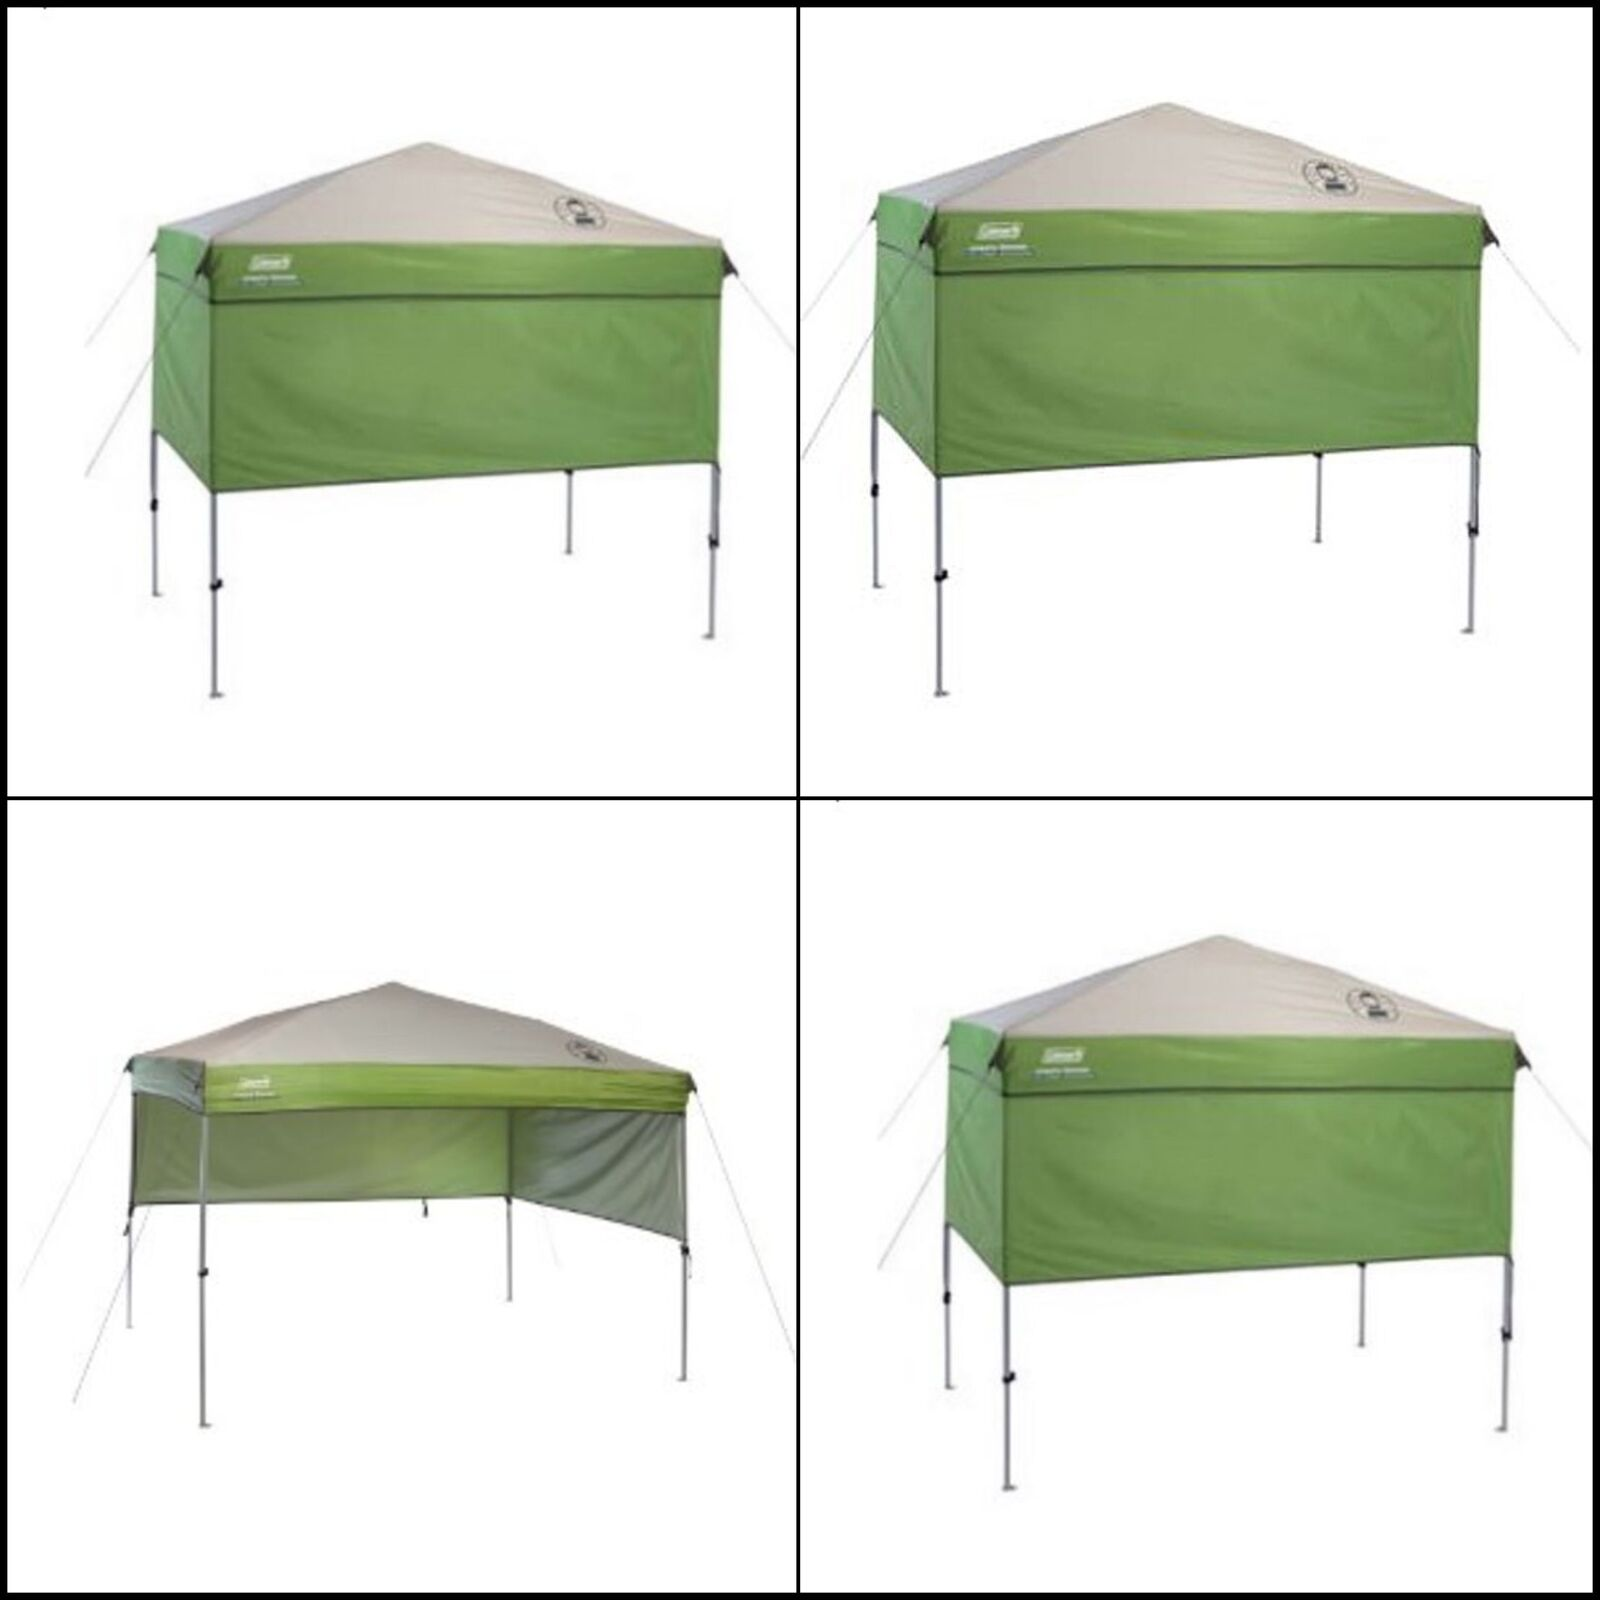 Heavy-Duty Portable Instant Canopy Sun Shelter  Outdoor Tent Green  7' x 5' ft  sales online